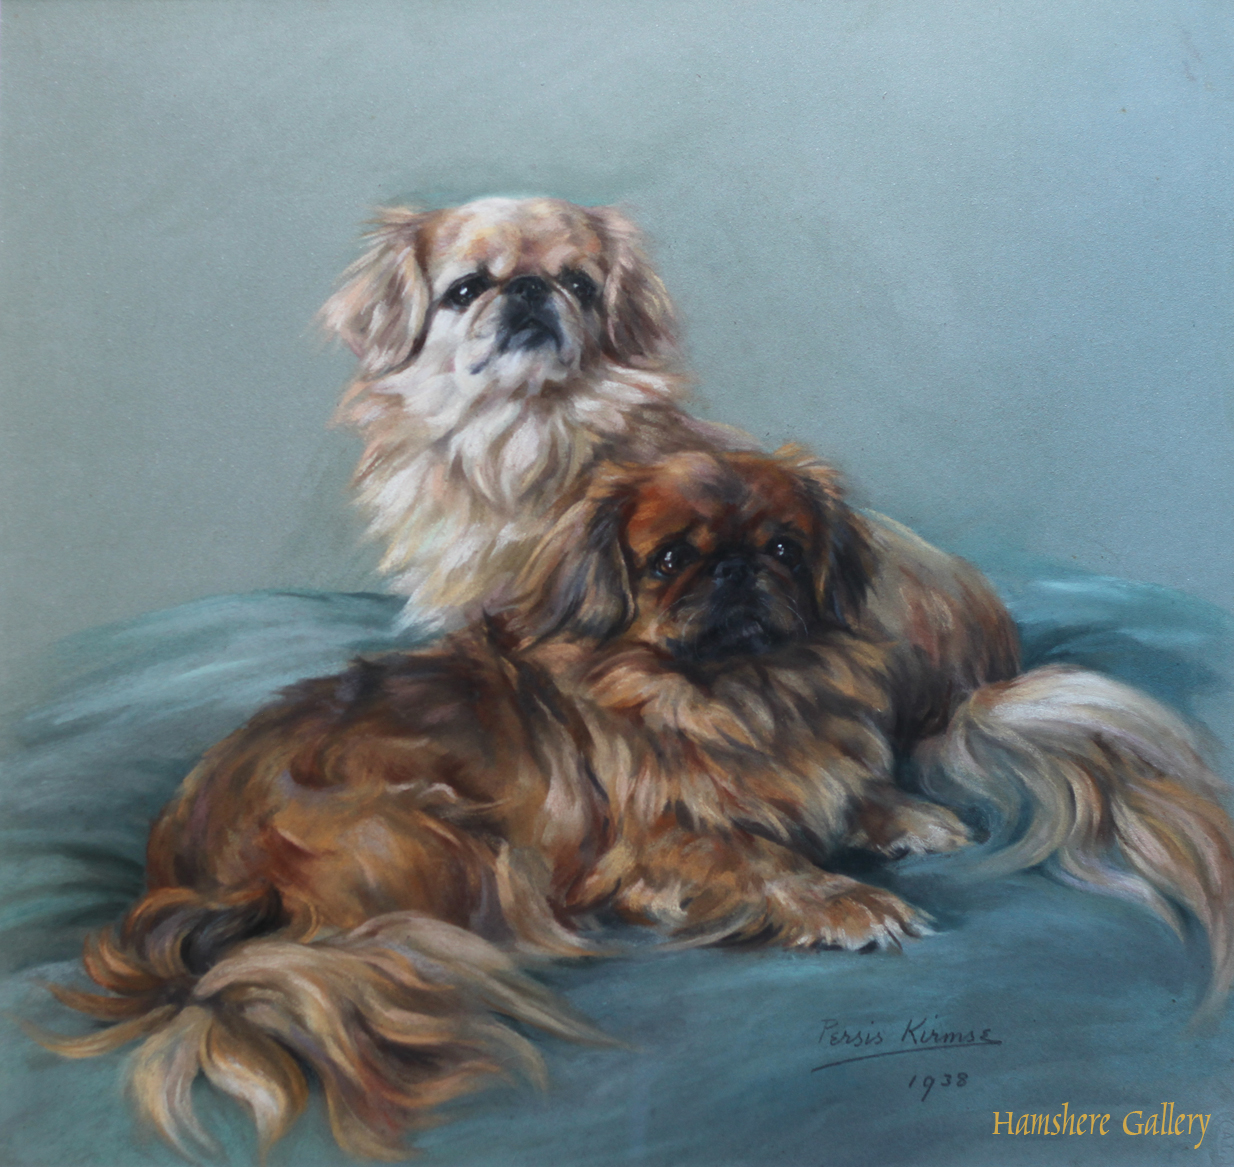 Click to see full size: Pekingese pastel by Persis Kirmse